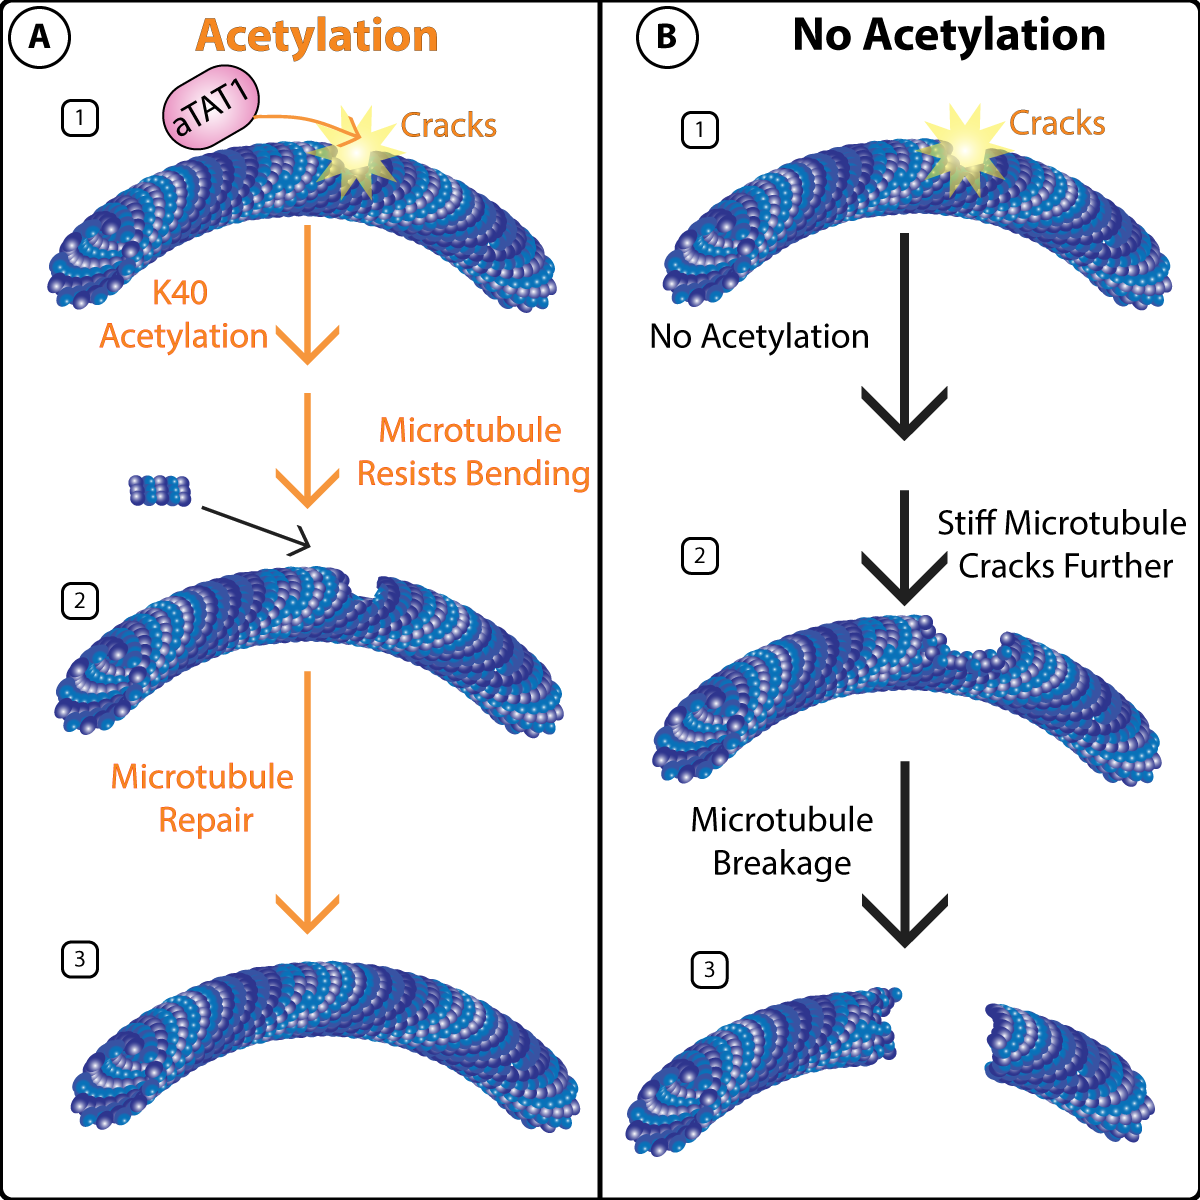 Figure 1: K40 acetylation protects microtubules from mechanical stress.